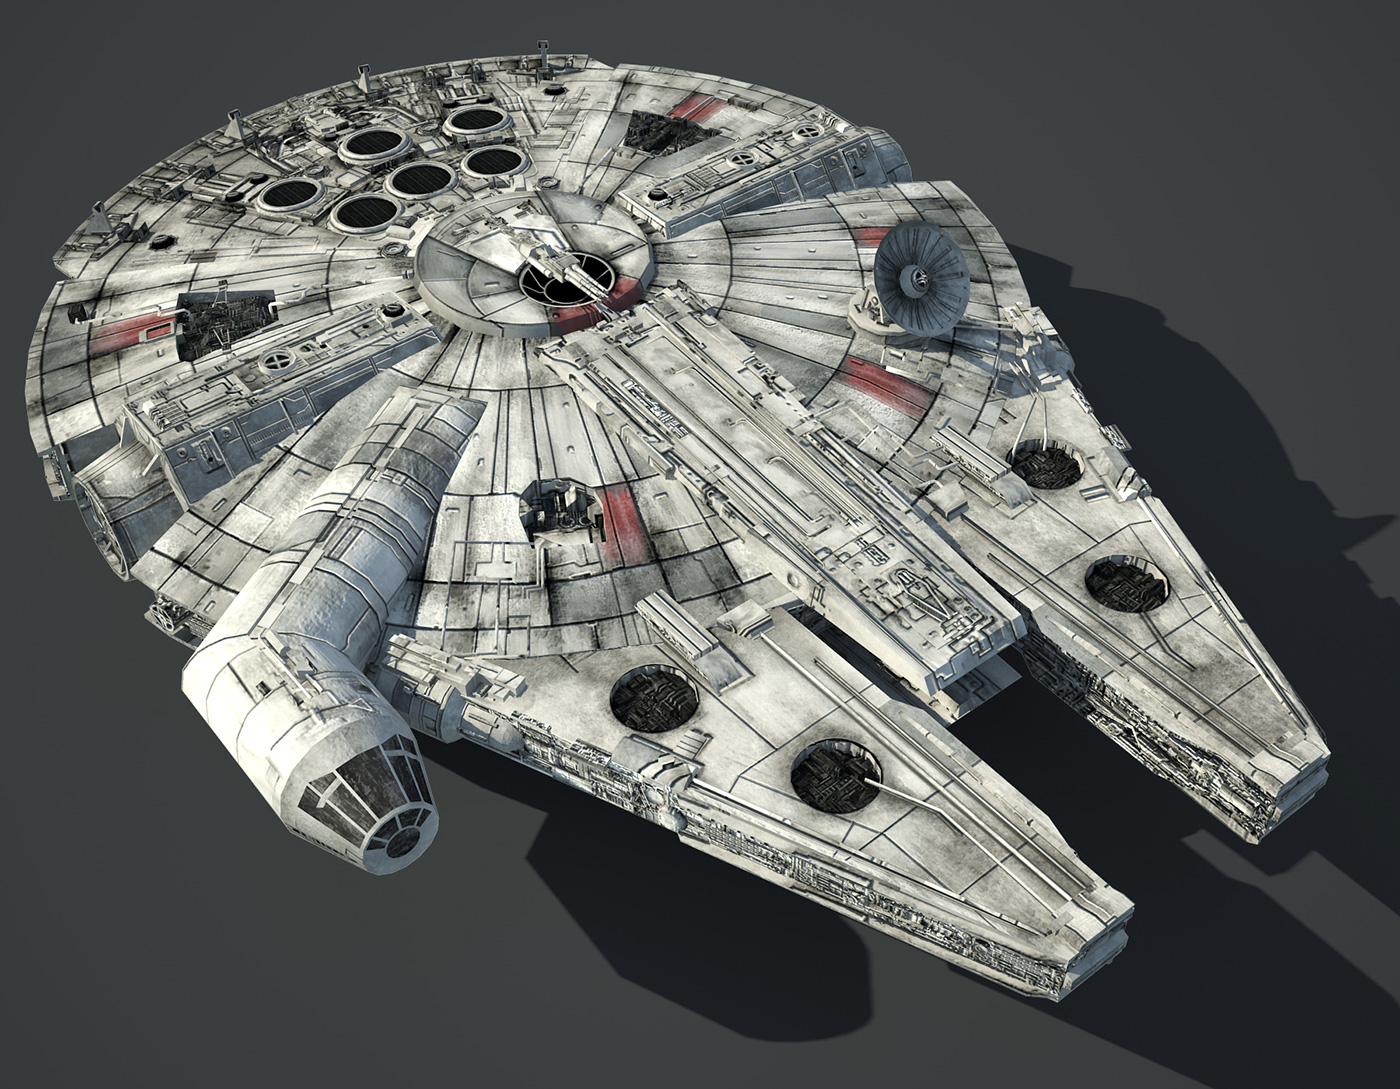 Game Ready Star Wars Millennium Falcon 3D model